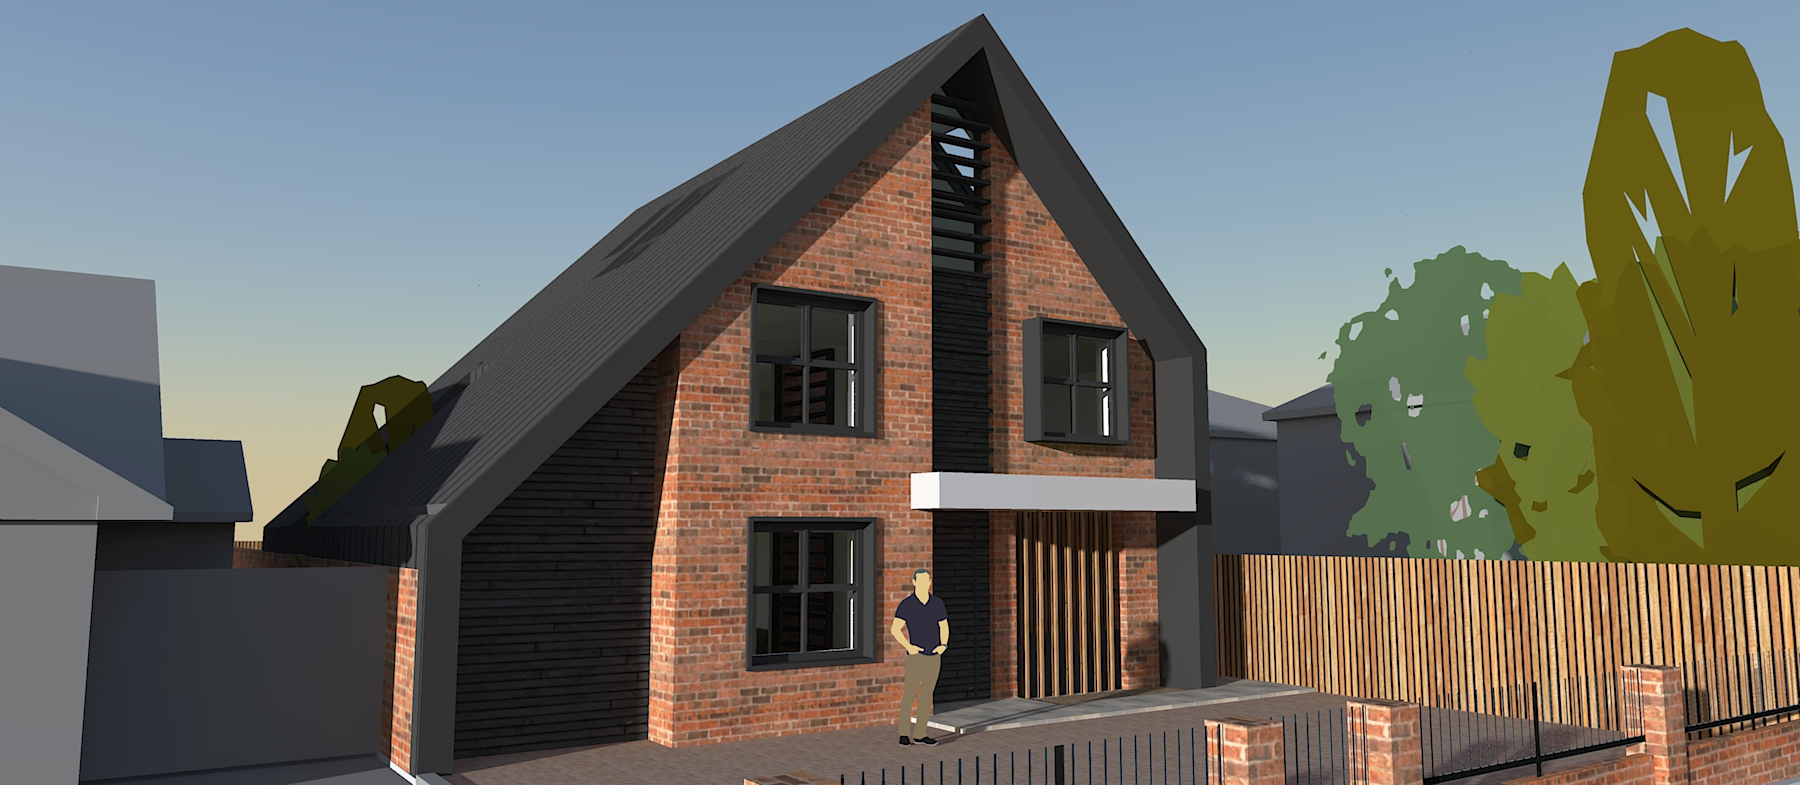 Planning Application on the way!